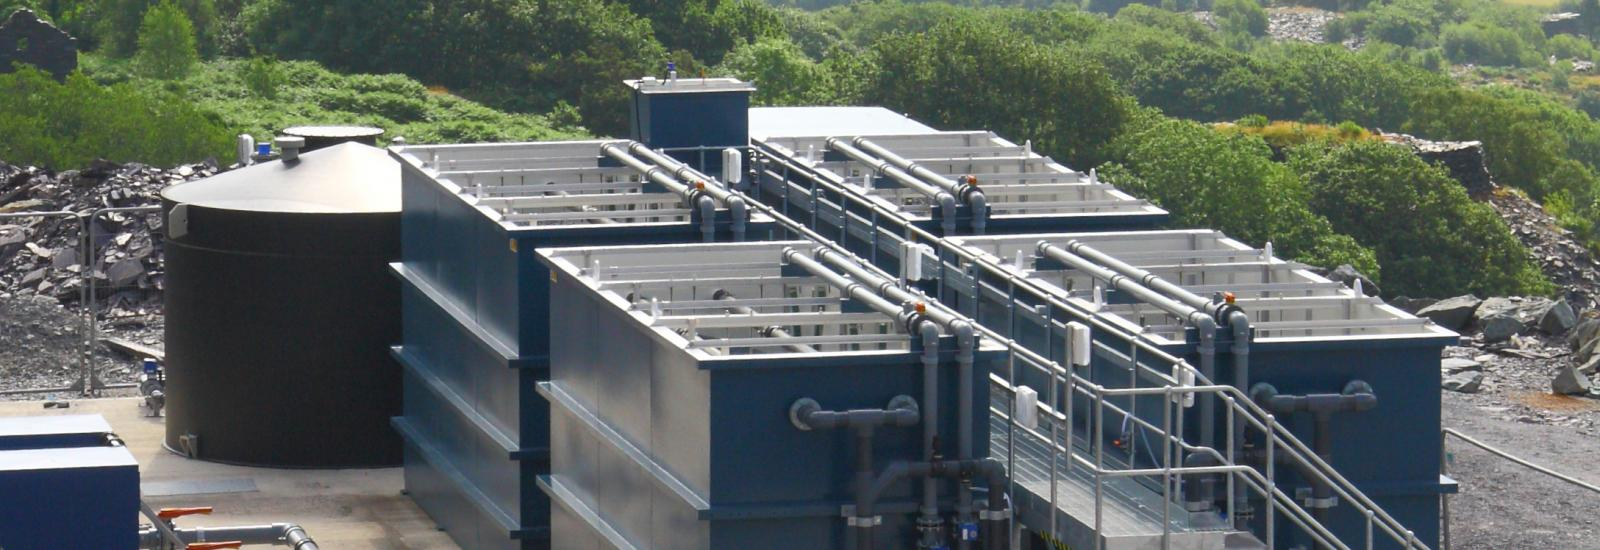 FLI Water - Wastewater Treatment | Metal Fabrication